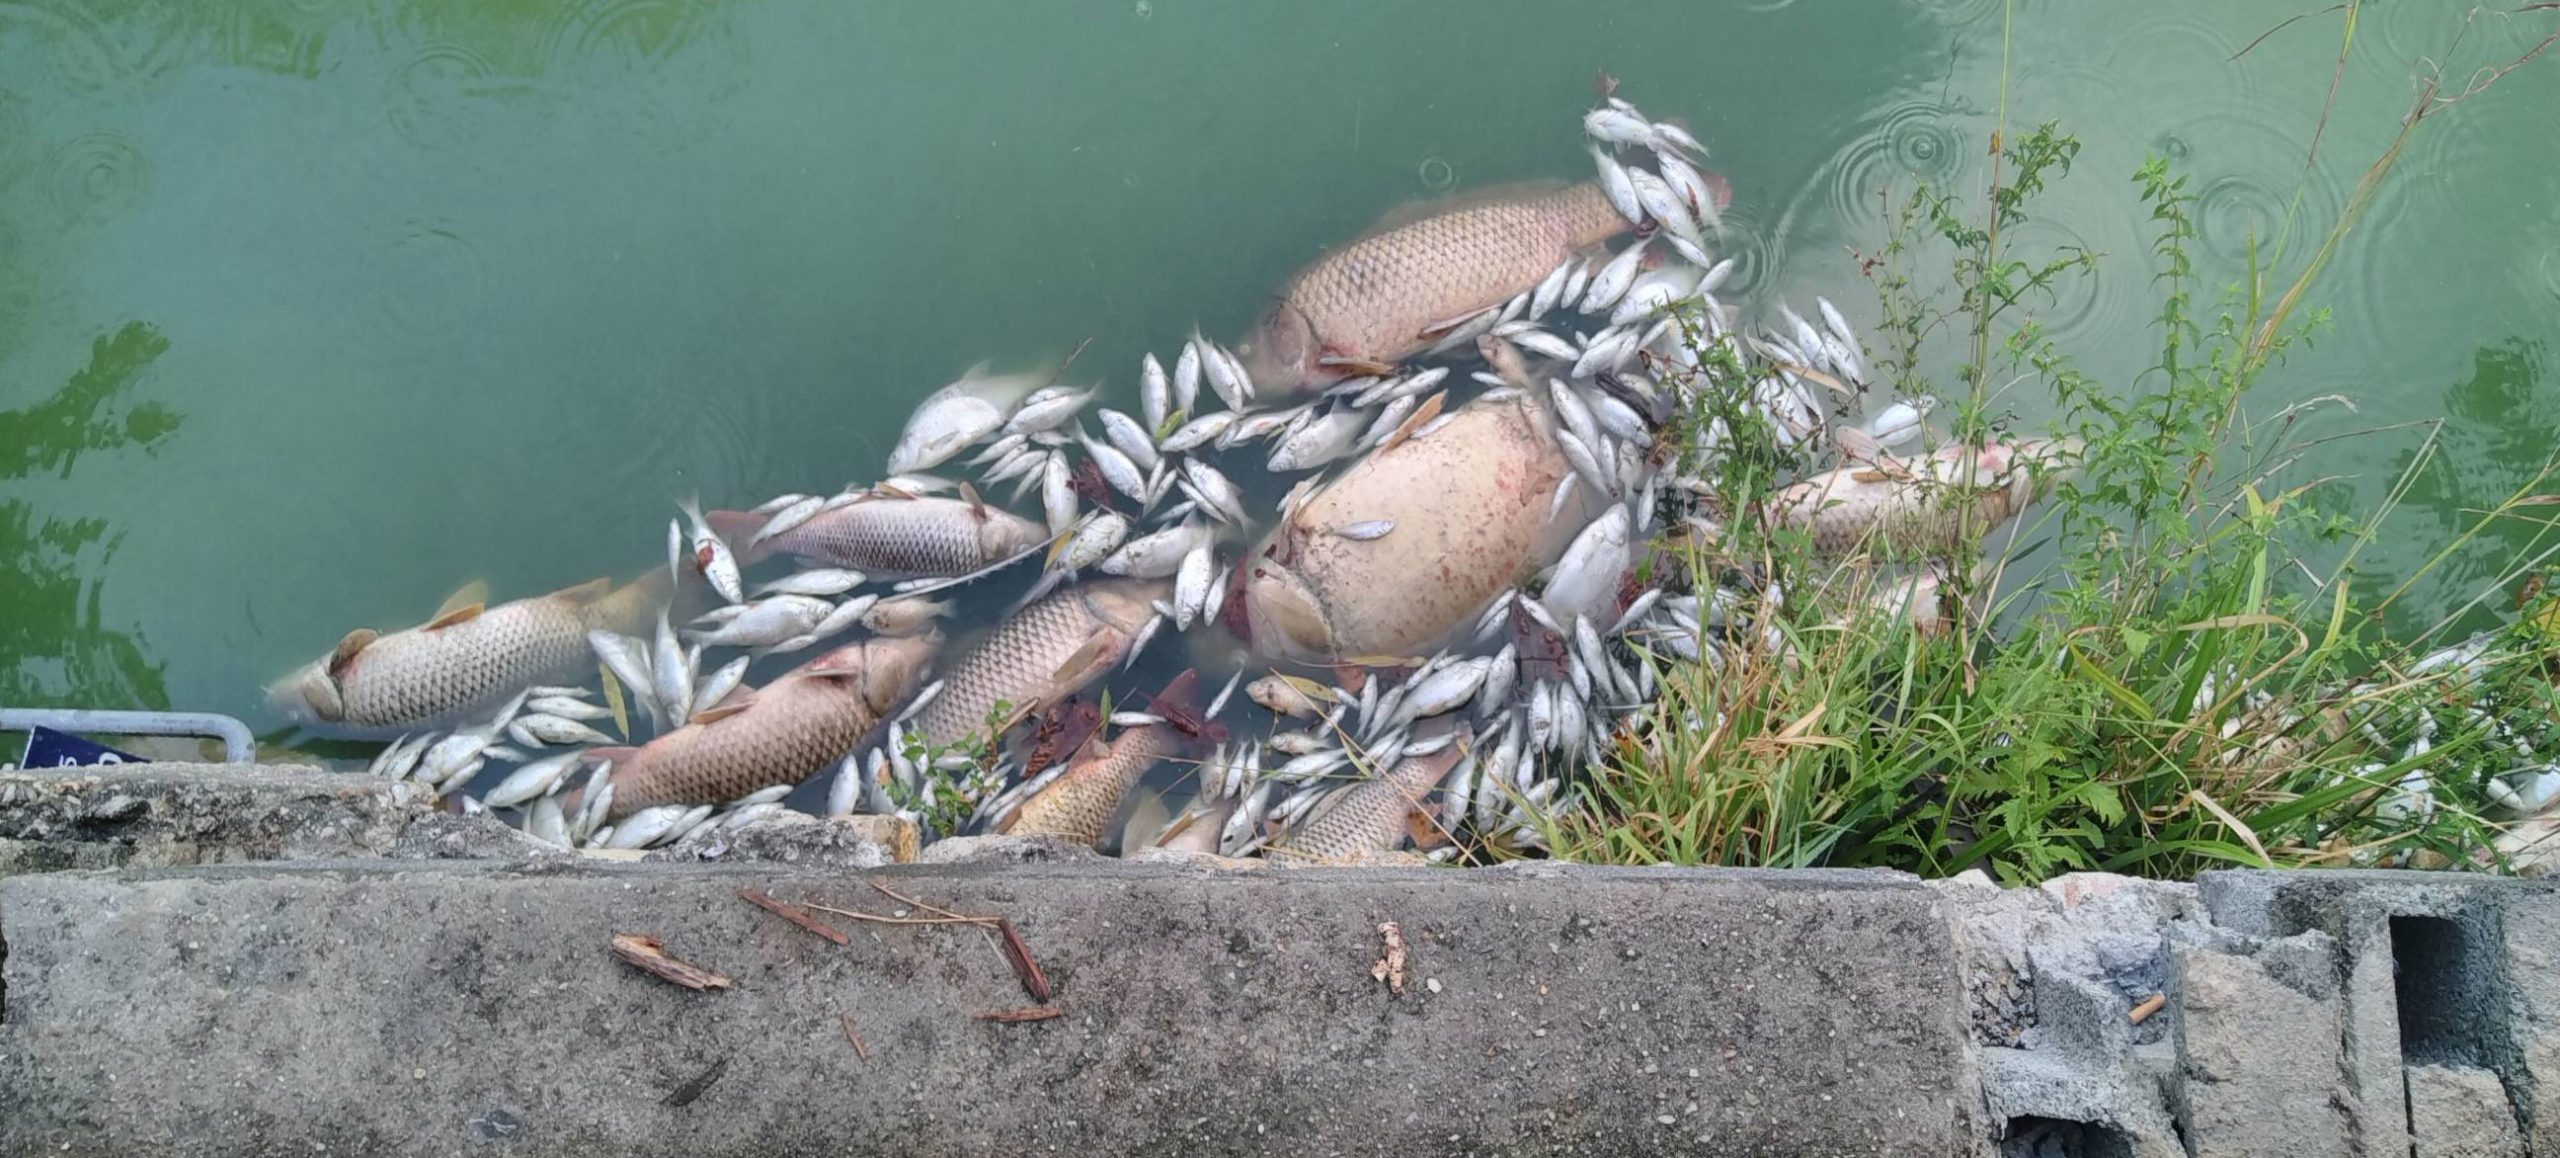 Photos de poissons morts